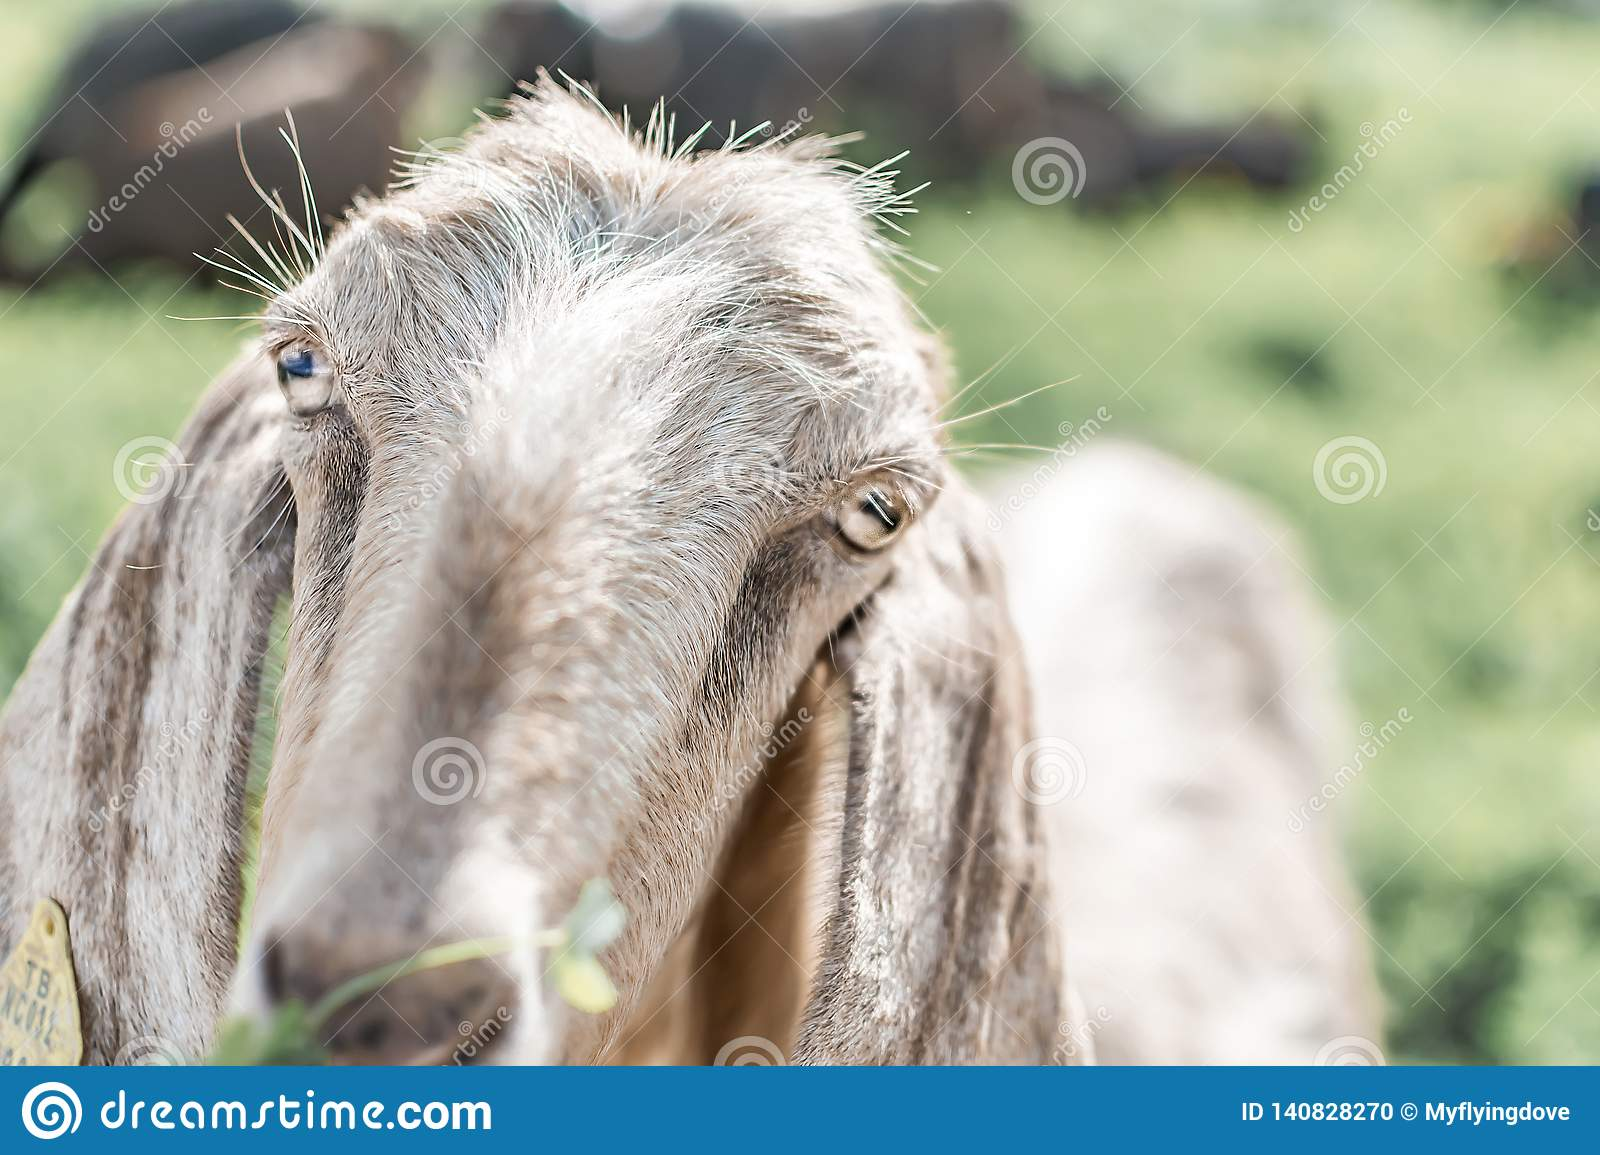 Close-up portrait of a young white goat looking at the camera. Front view. Anglo-Nubian breed of domestic goat